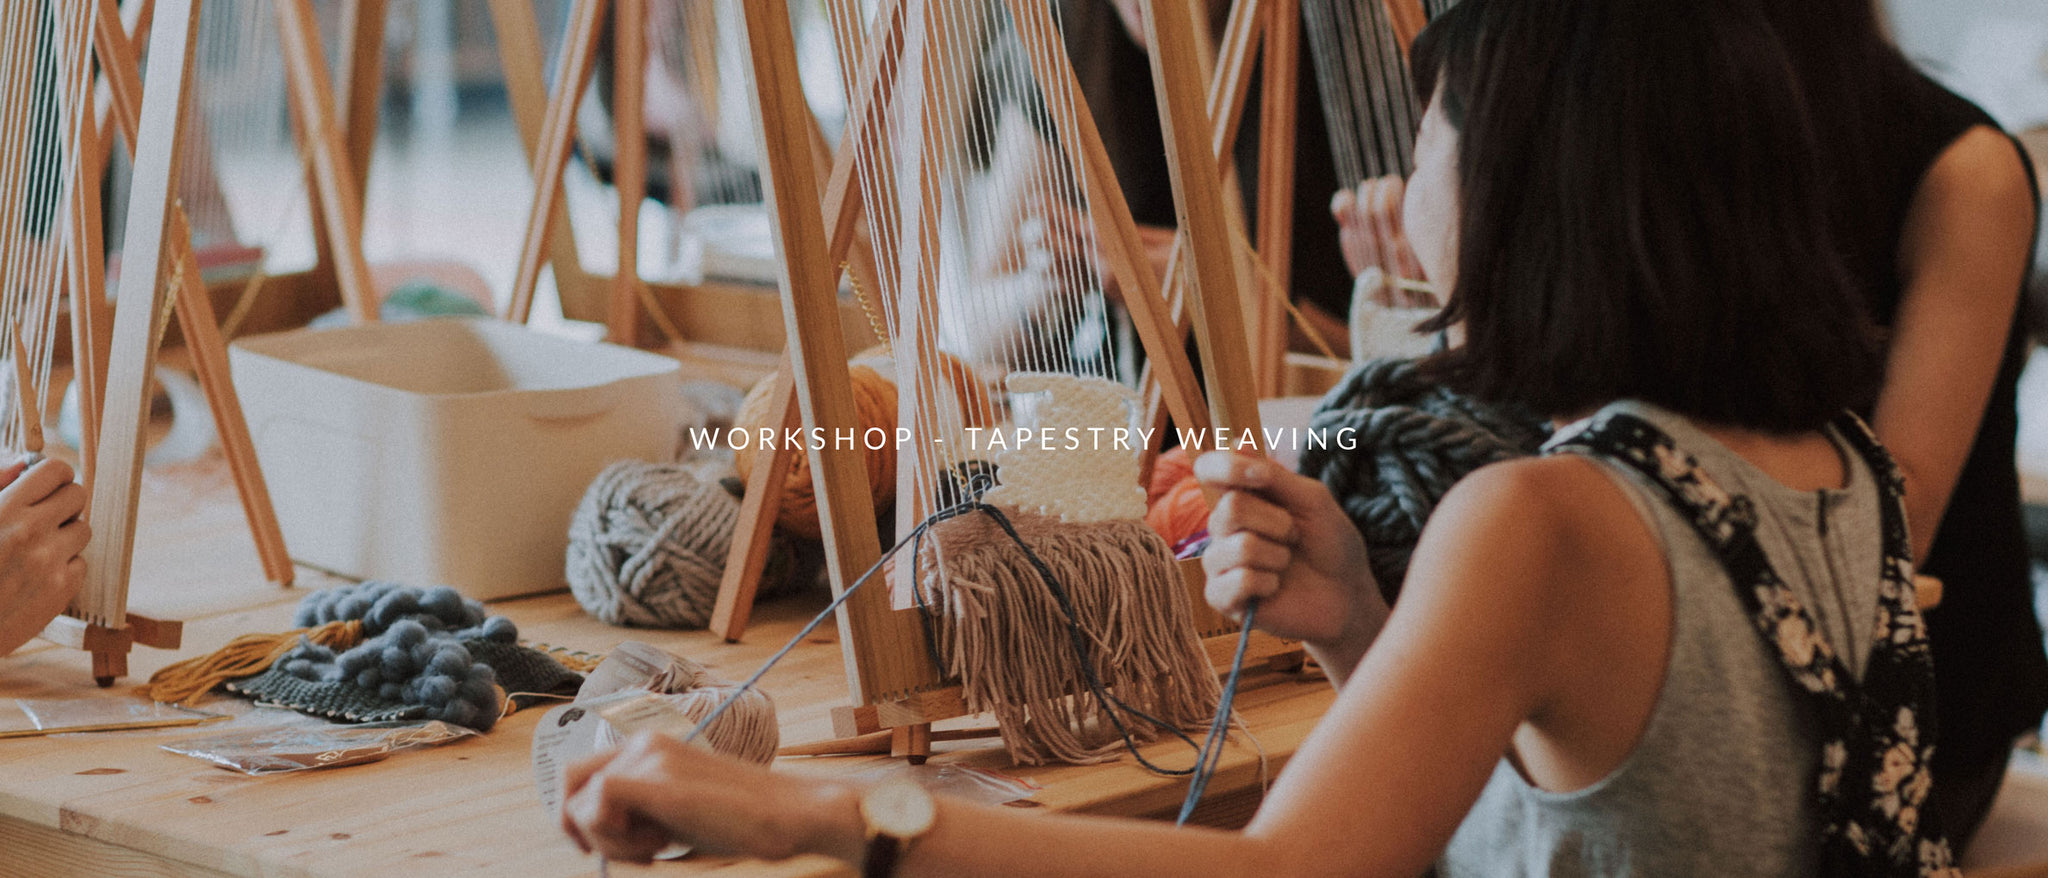 Workshop: Tapestry Weaving